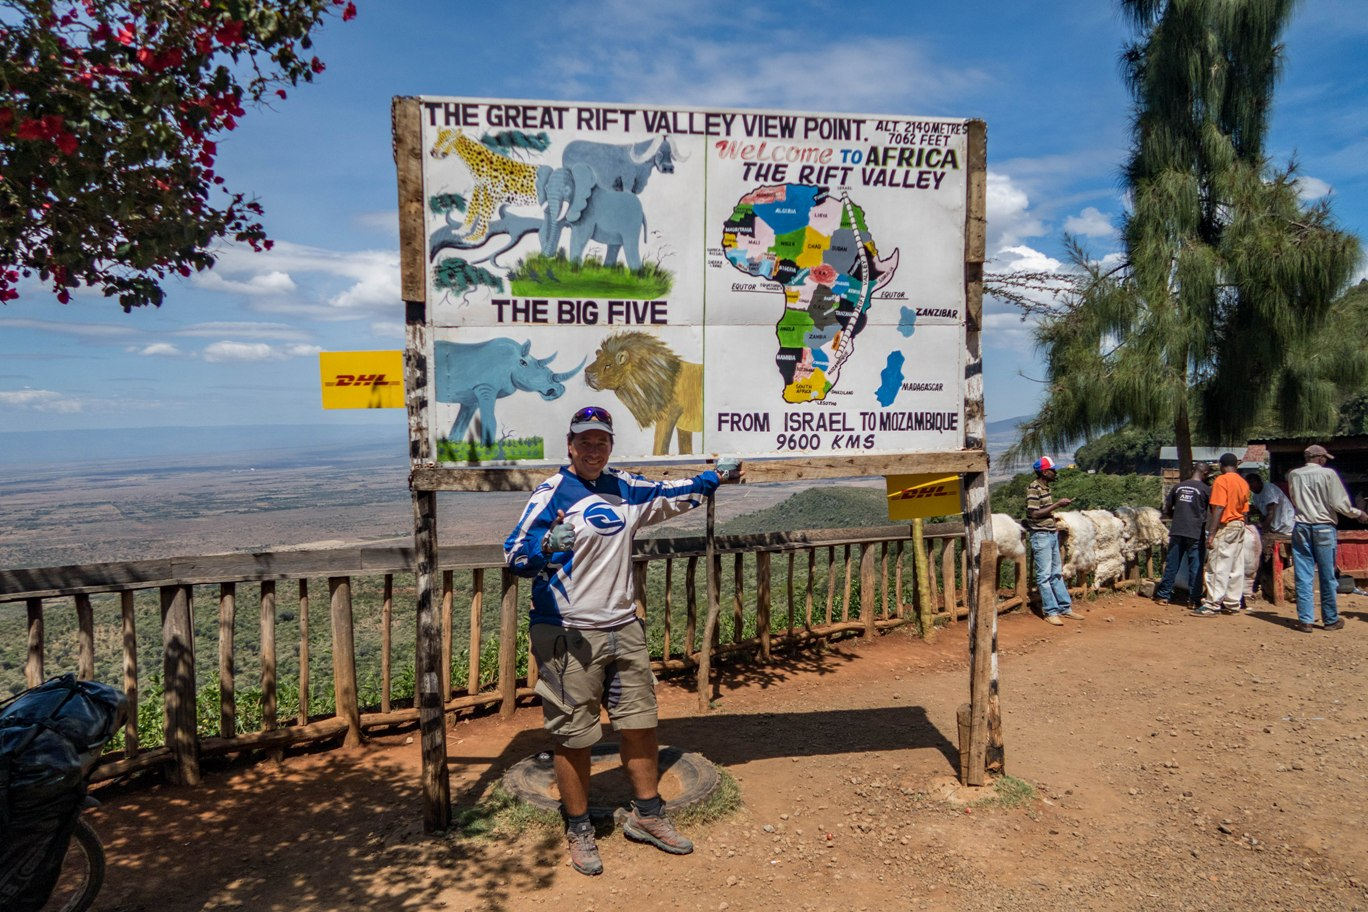 Great Rift Valley on the way to Nairobi cycling.